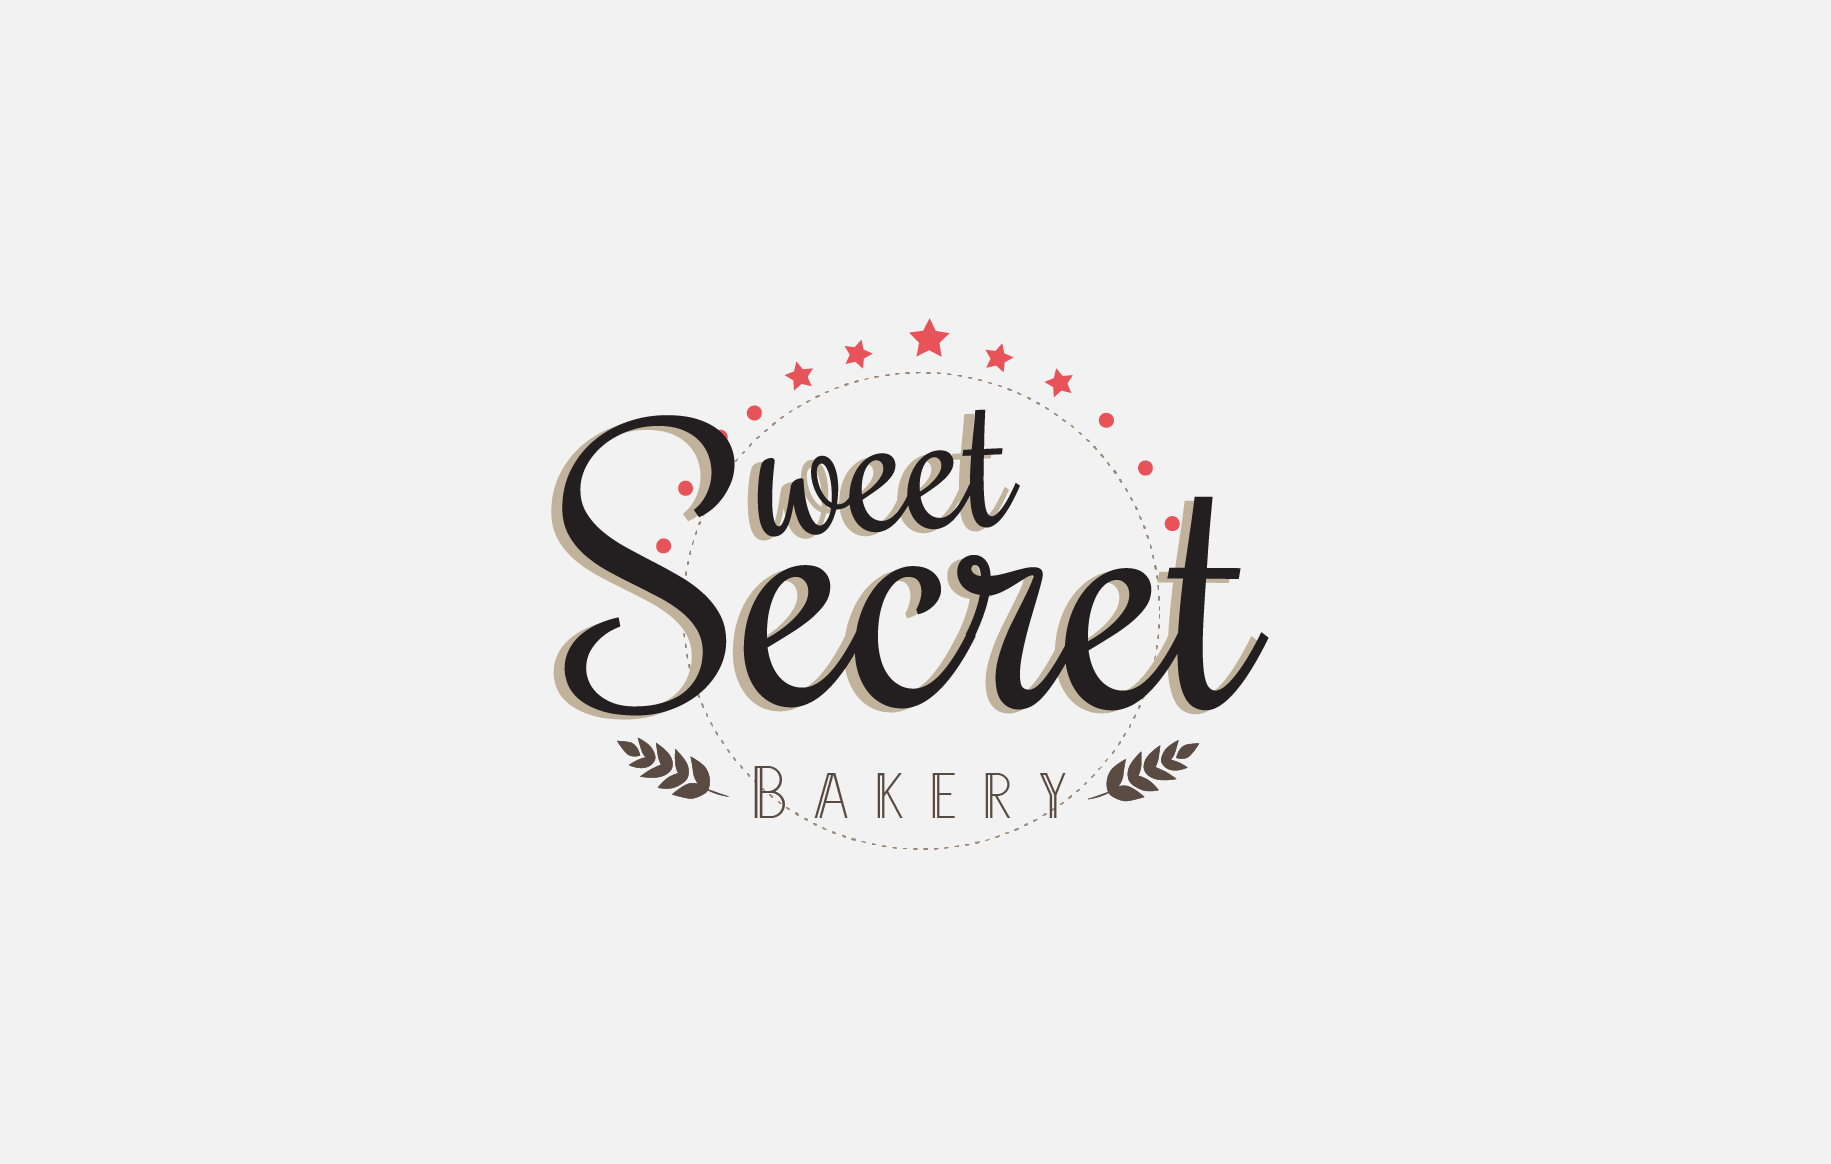 Sweet Secret Bakery